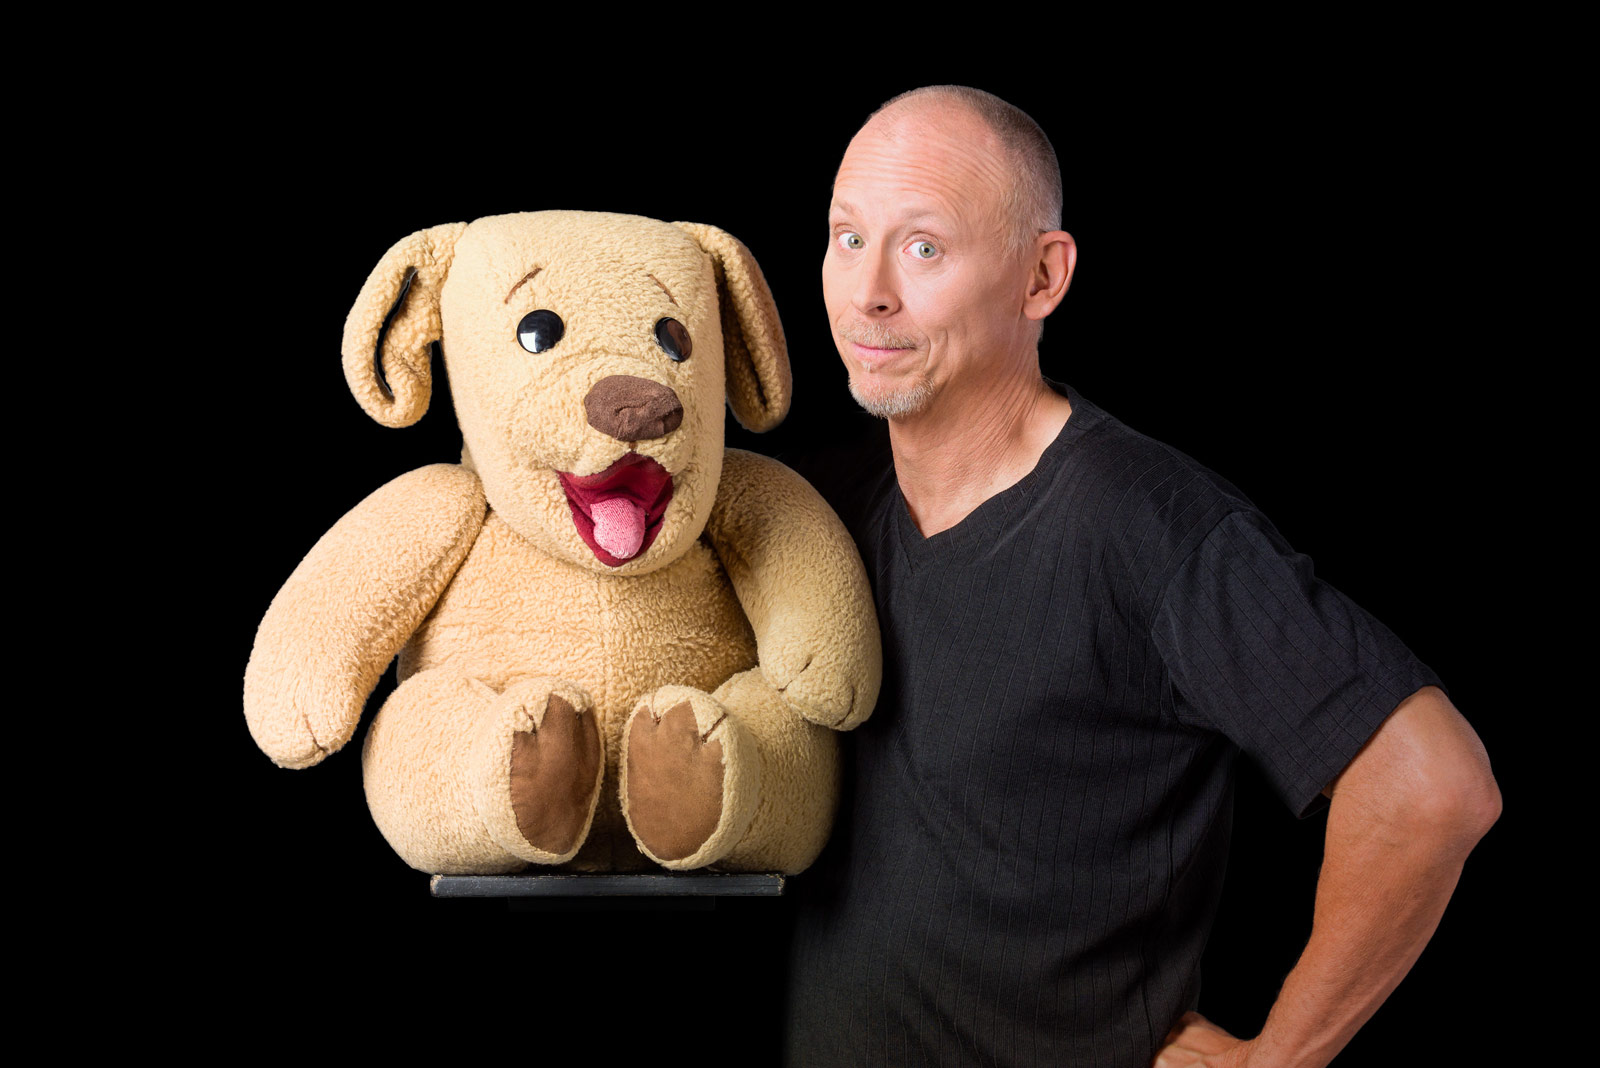 Image: David Strassman & Ted E. Bare